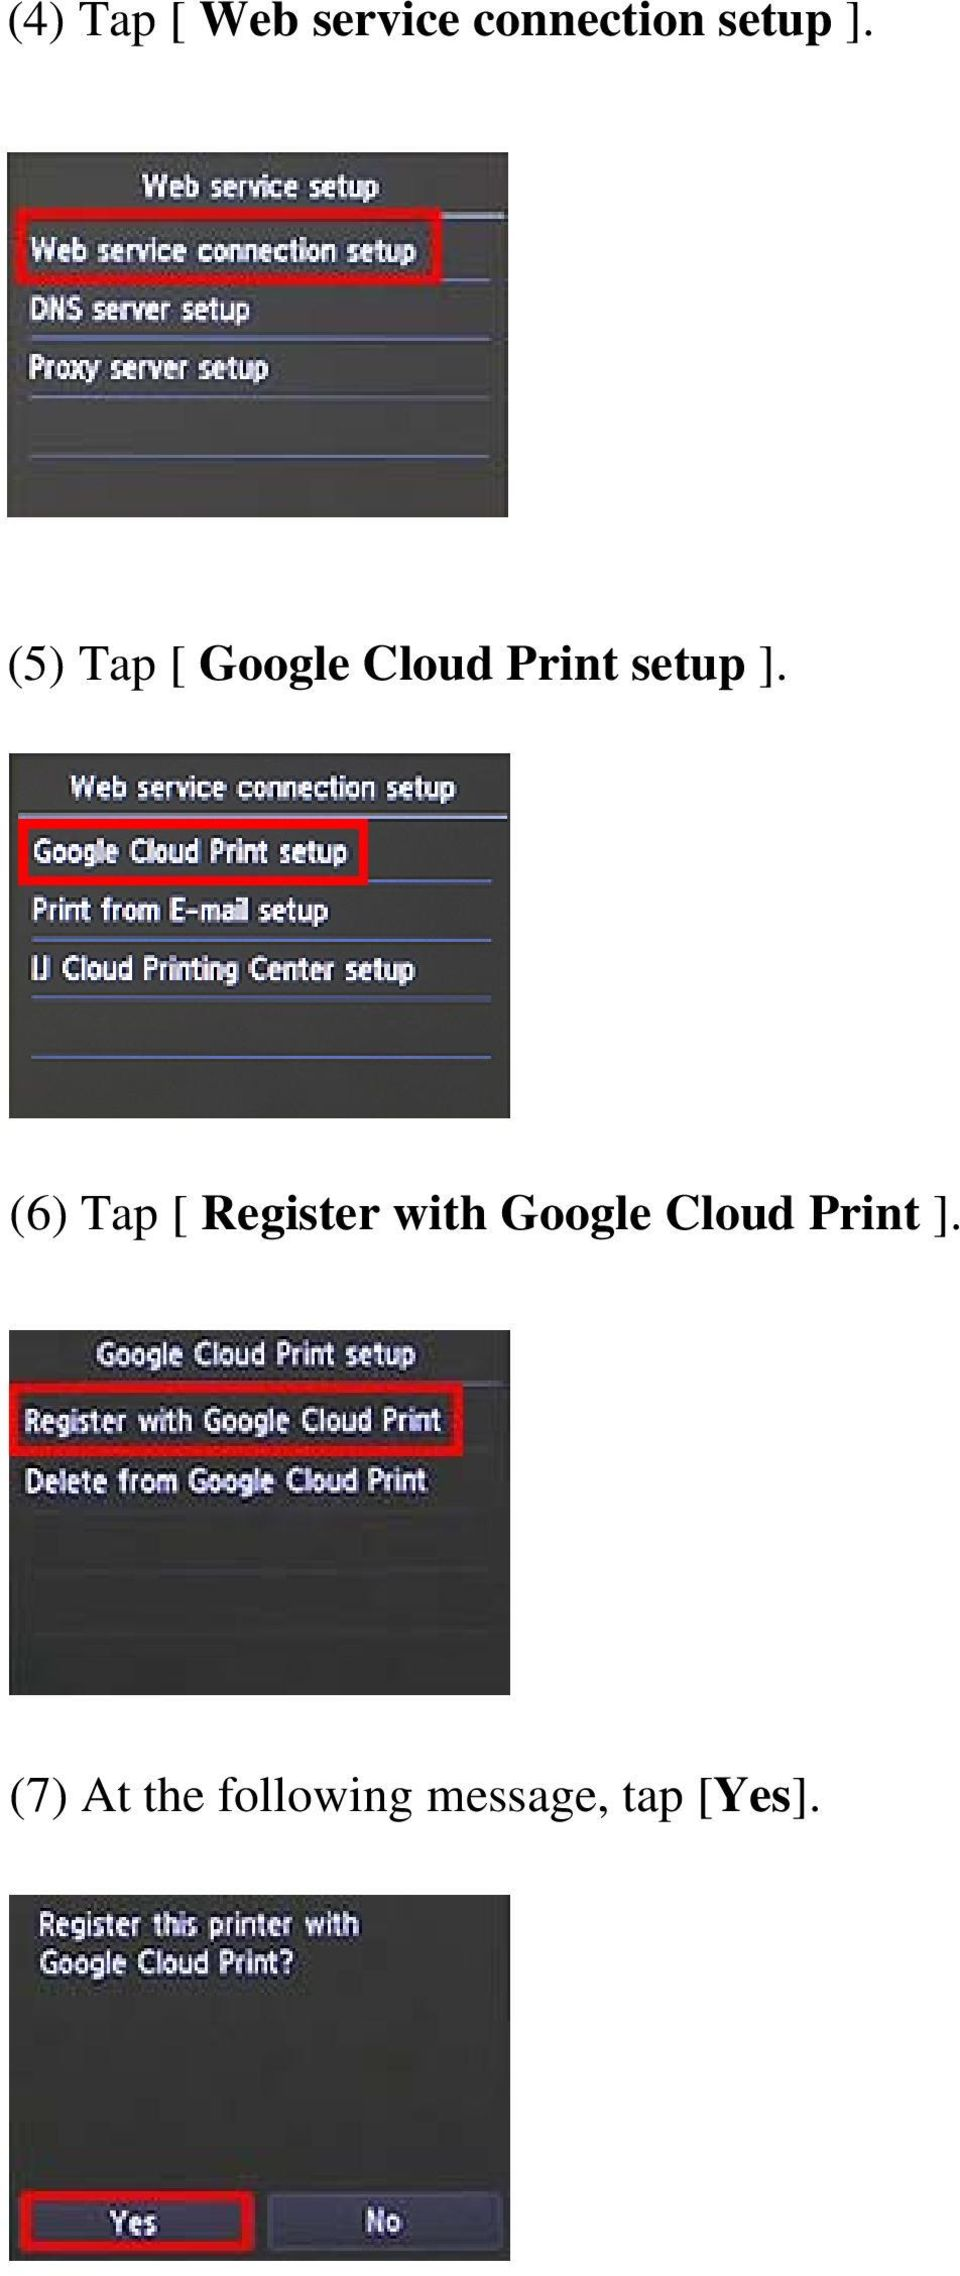 (6) Tap [ Register with Google Cloud